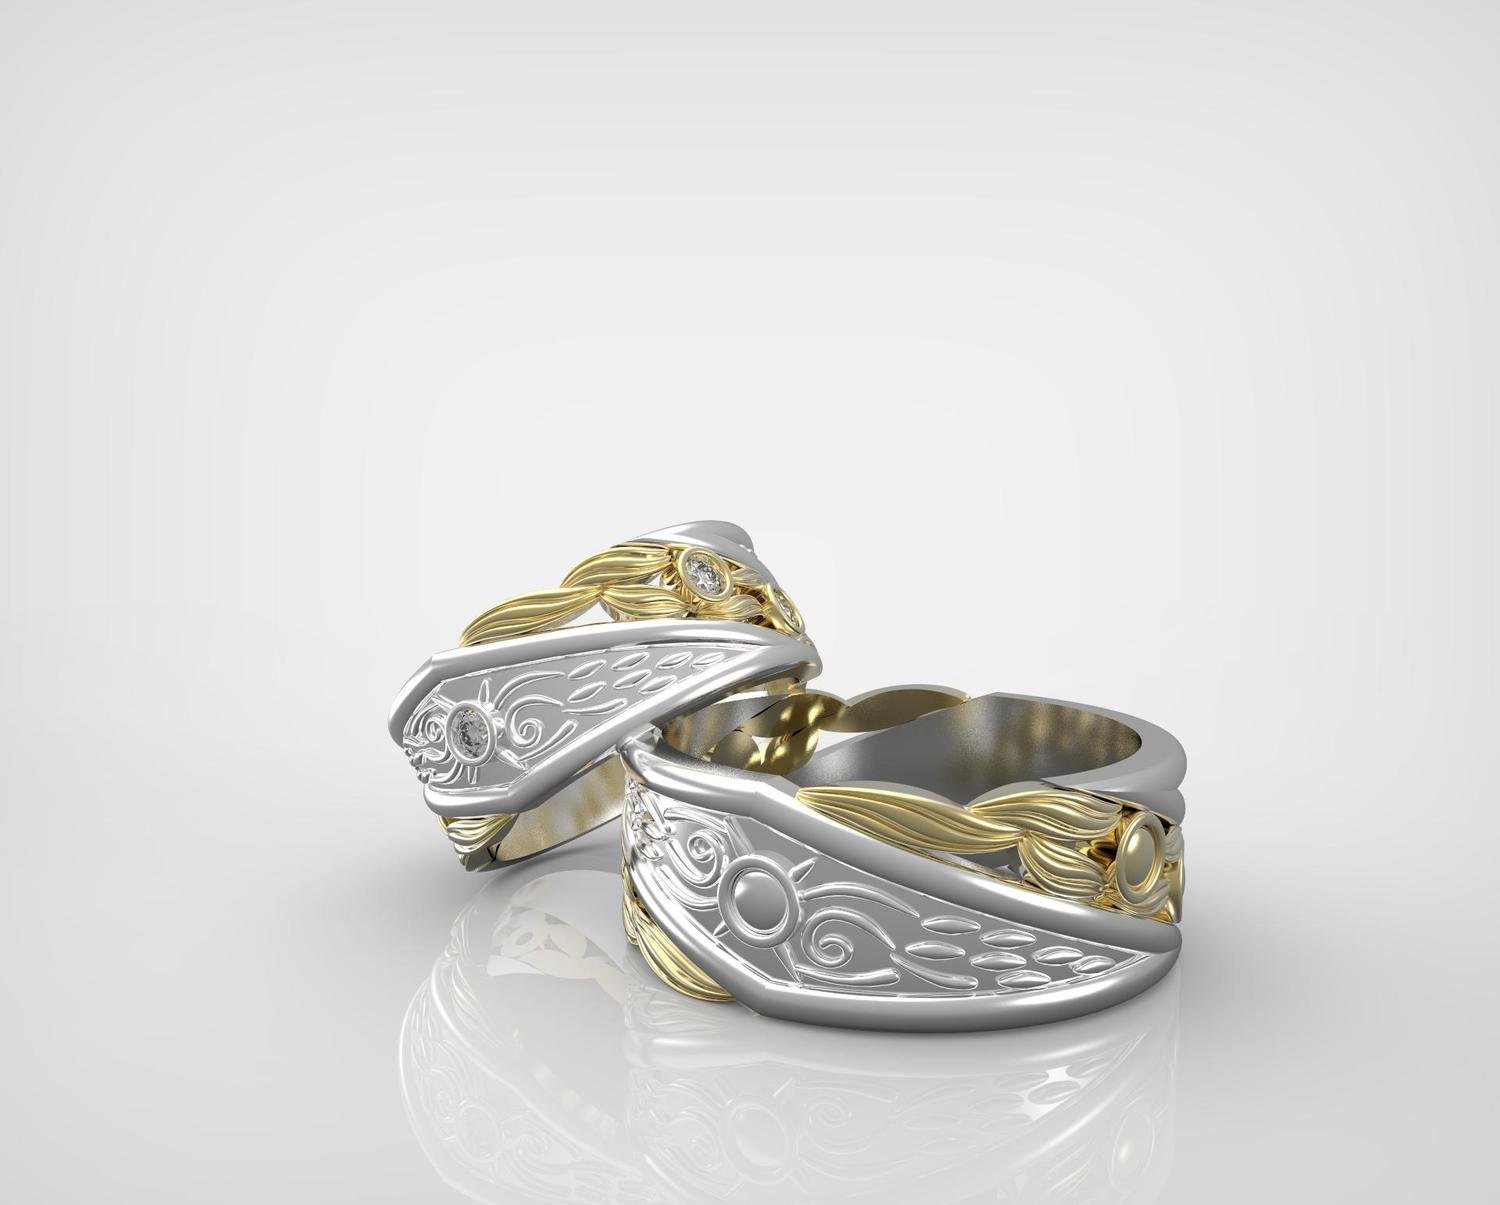 3D CAD Model of Wedding Rings (pair)